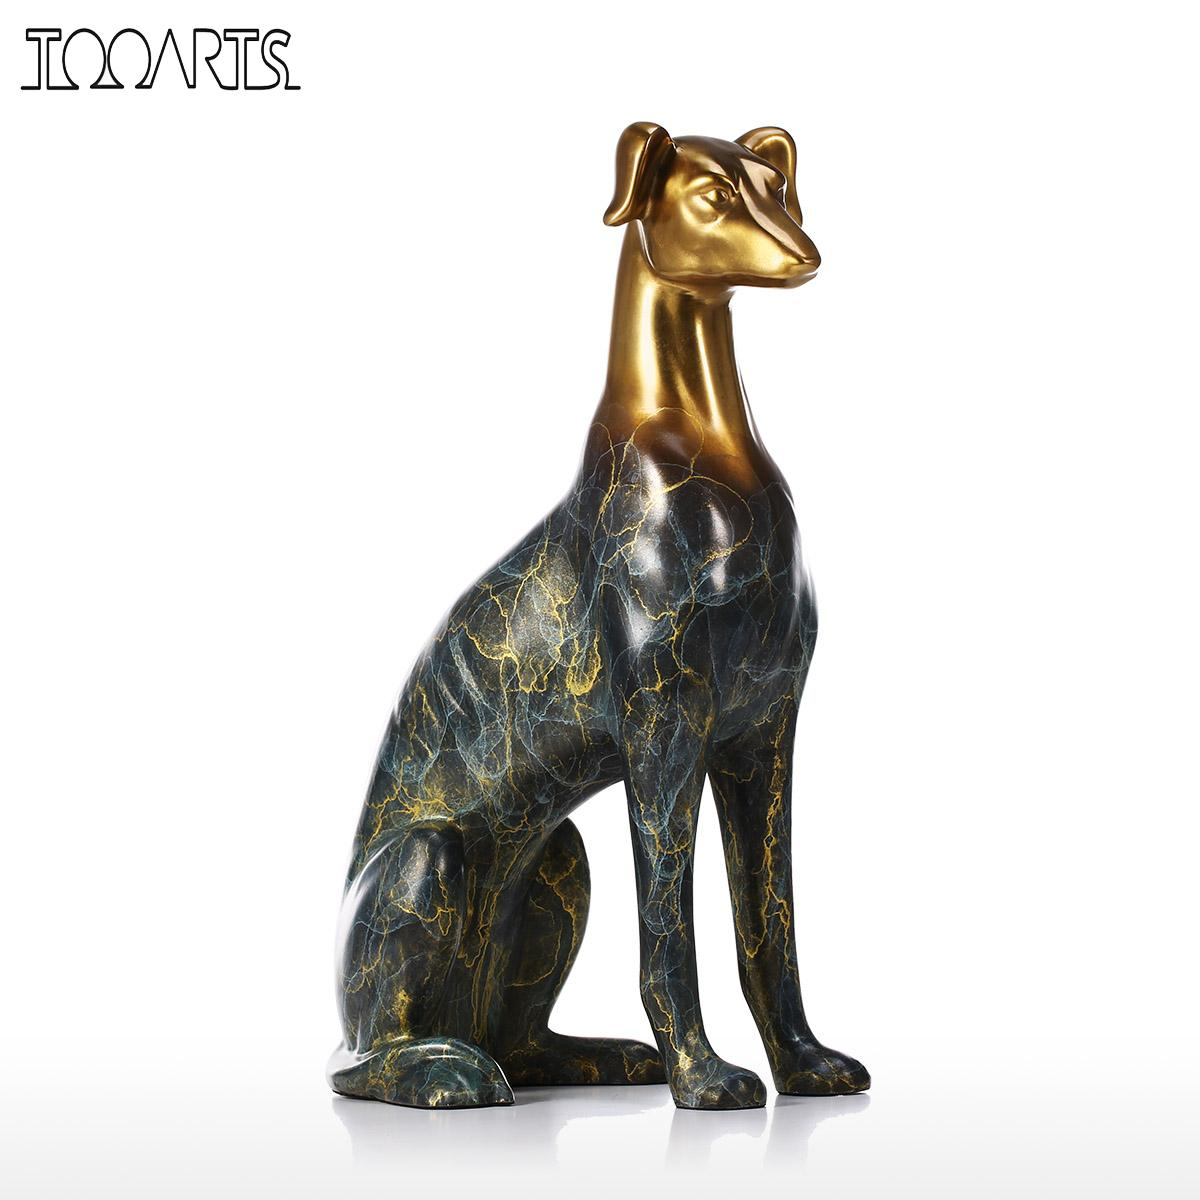 Tooarts Labrador Chien Bronze Sculpture Home Decor Sculpture De Bureau Décoratif Figurine Main Animaux Statues et Sculptures